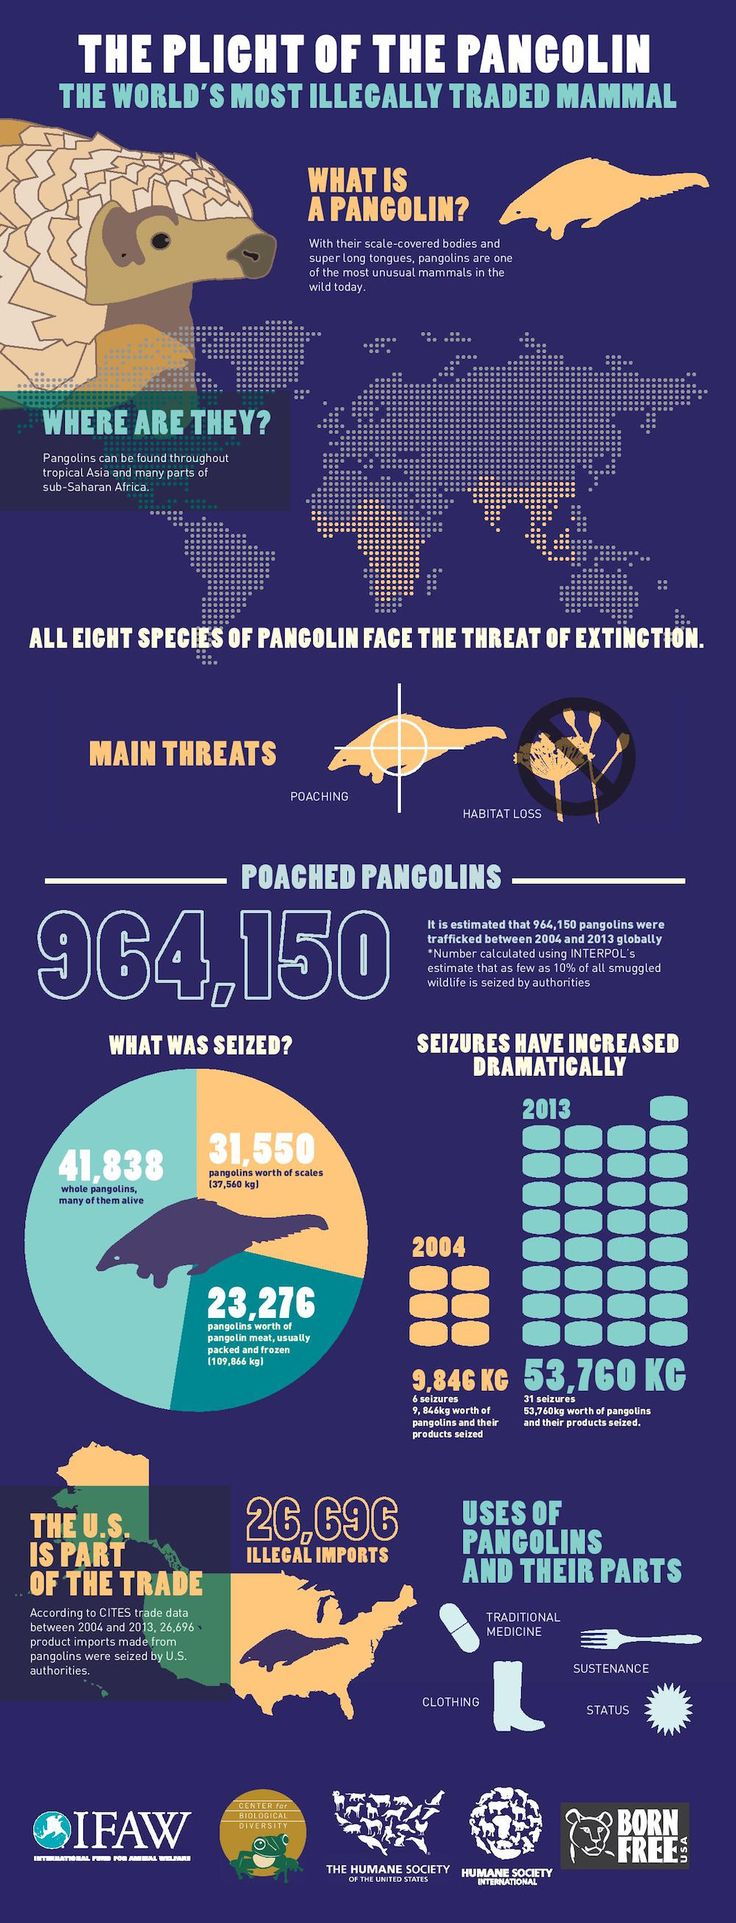 What is a Pangolin? 9 Facts about Pangolins